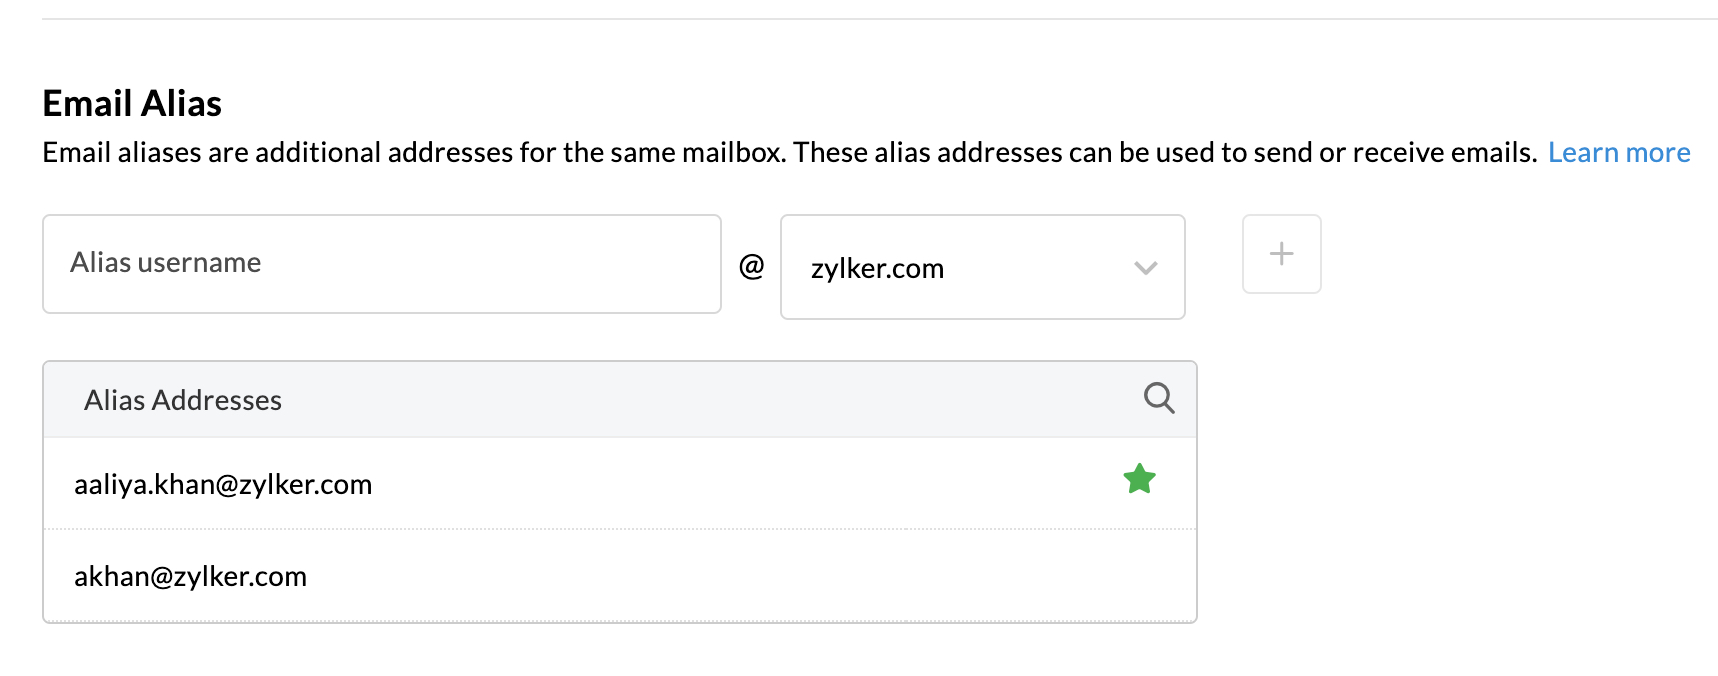 Add email alias to the primary account